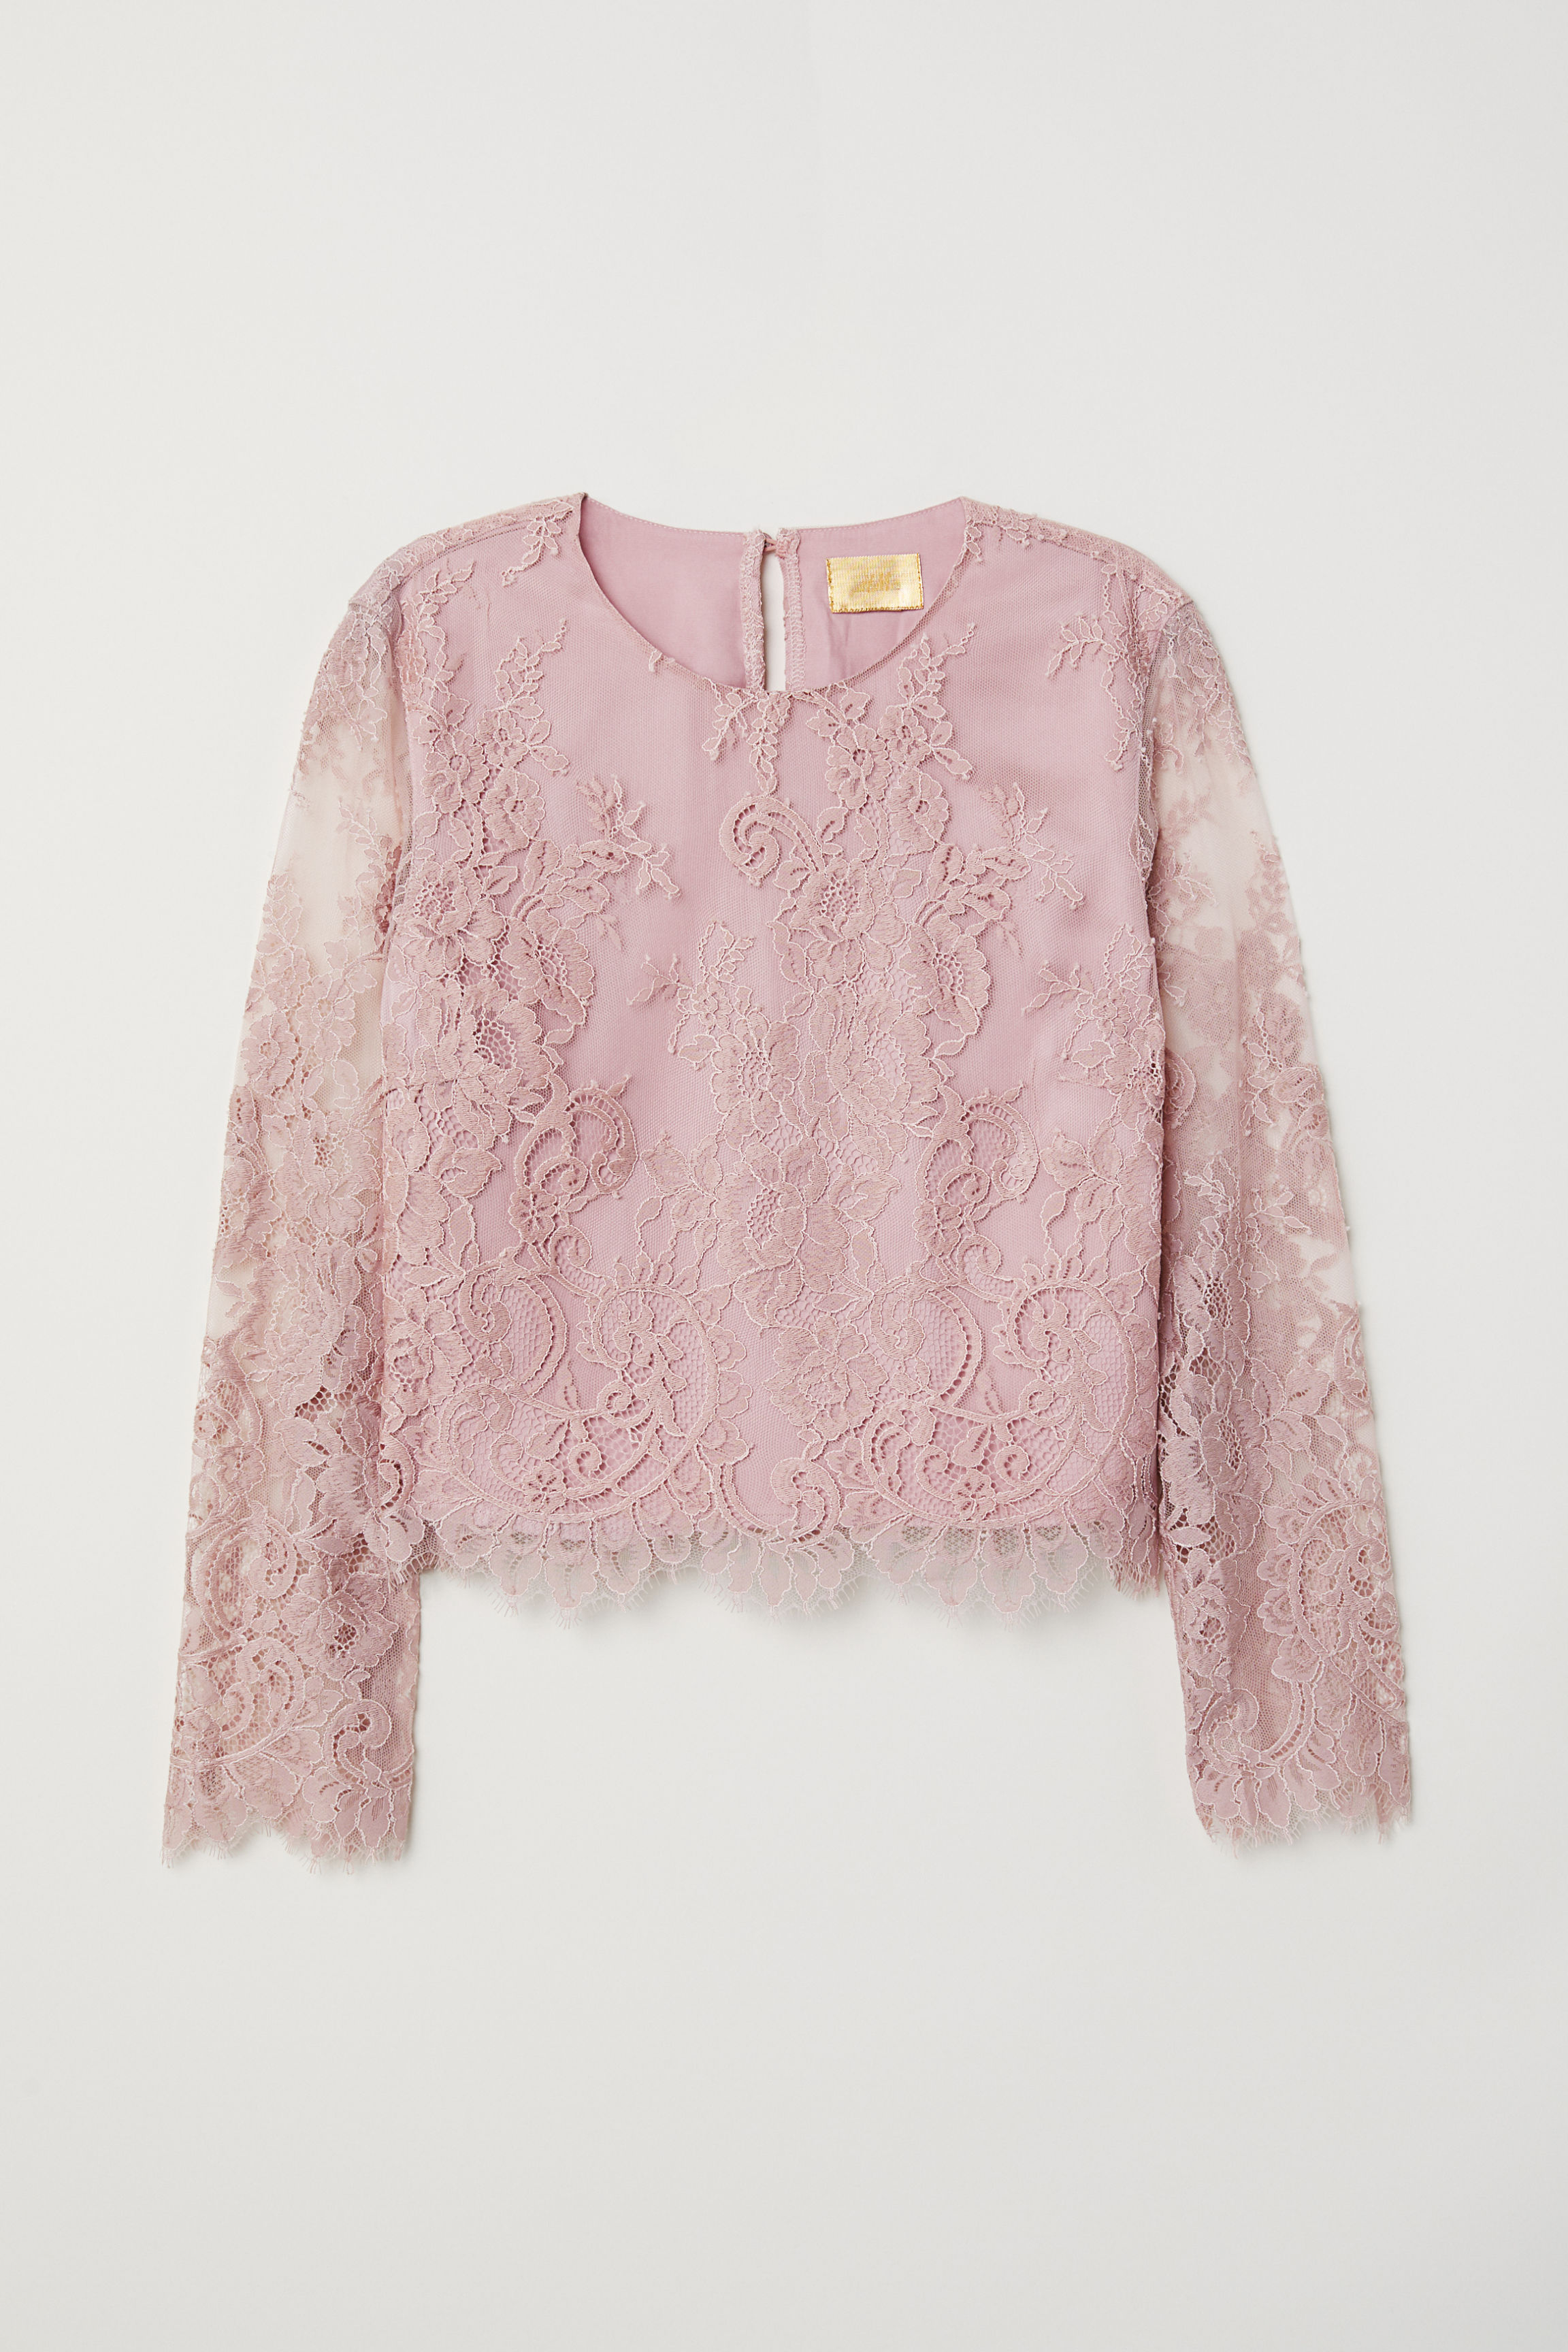 cc3adef48 Victorian Lace Blouses Womens Shirts « Alzheimer's Network of Oregon